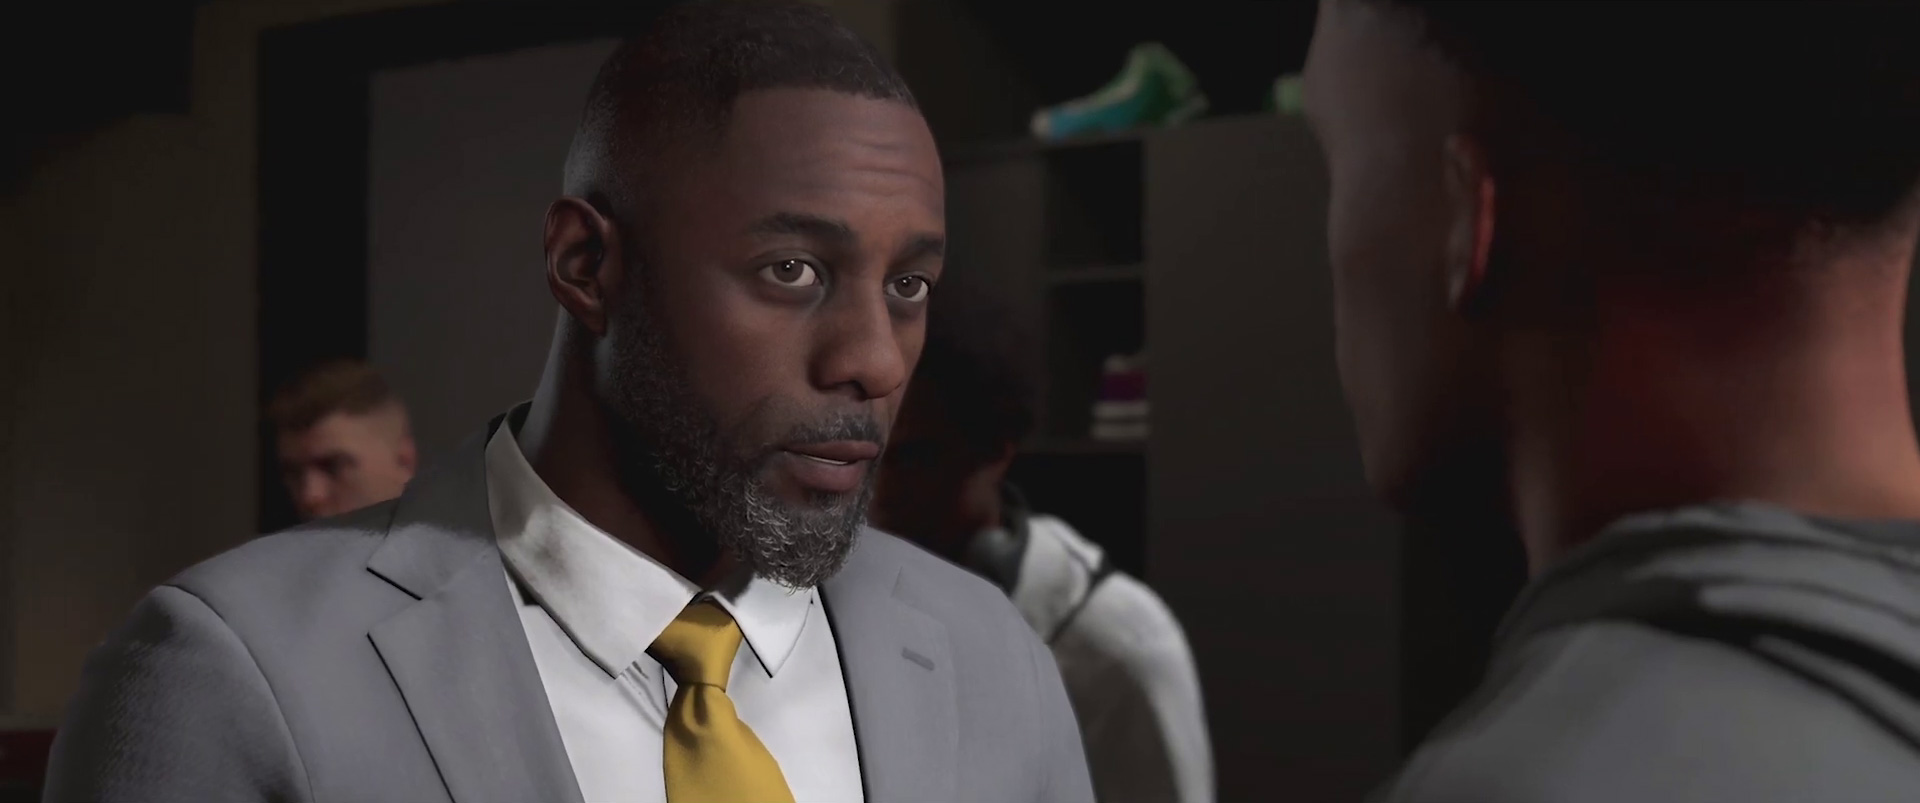 Idris Elba as a basketball coach wearing a light gray suit, white shirt, and mustard-yellow tie in NBA 2K20's MyCareer mode